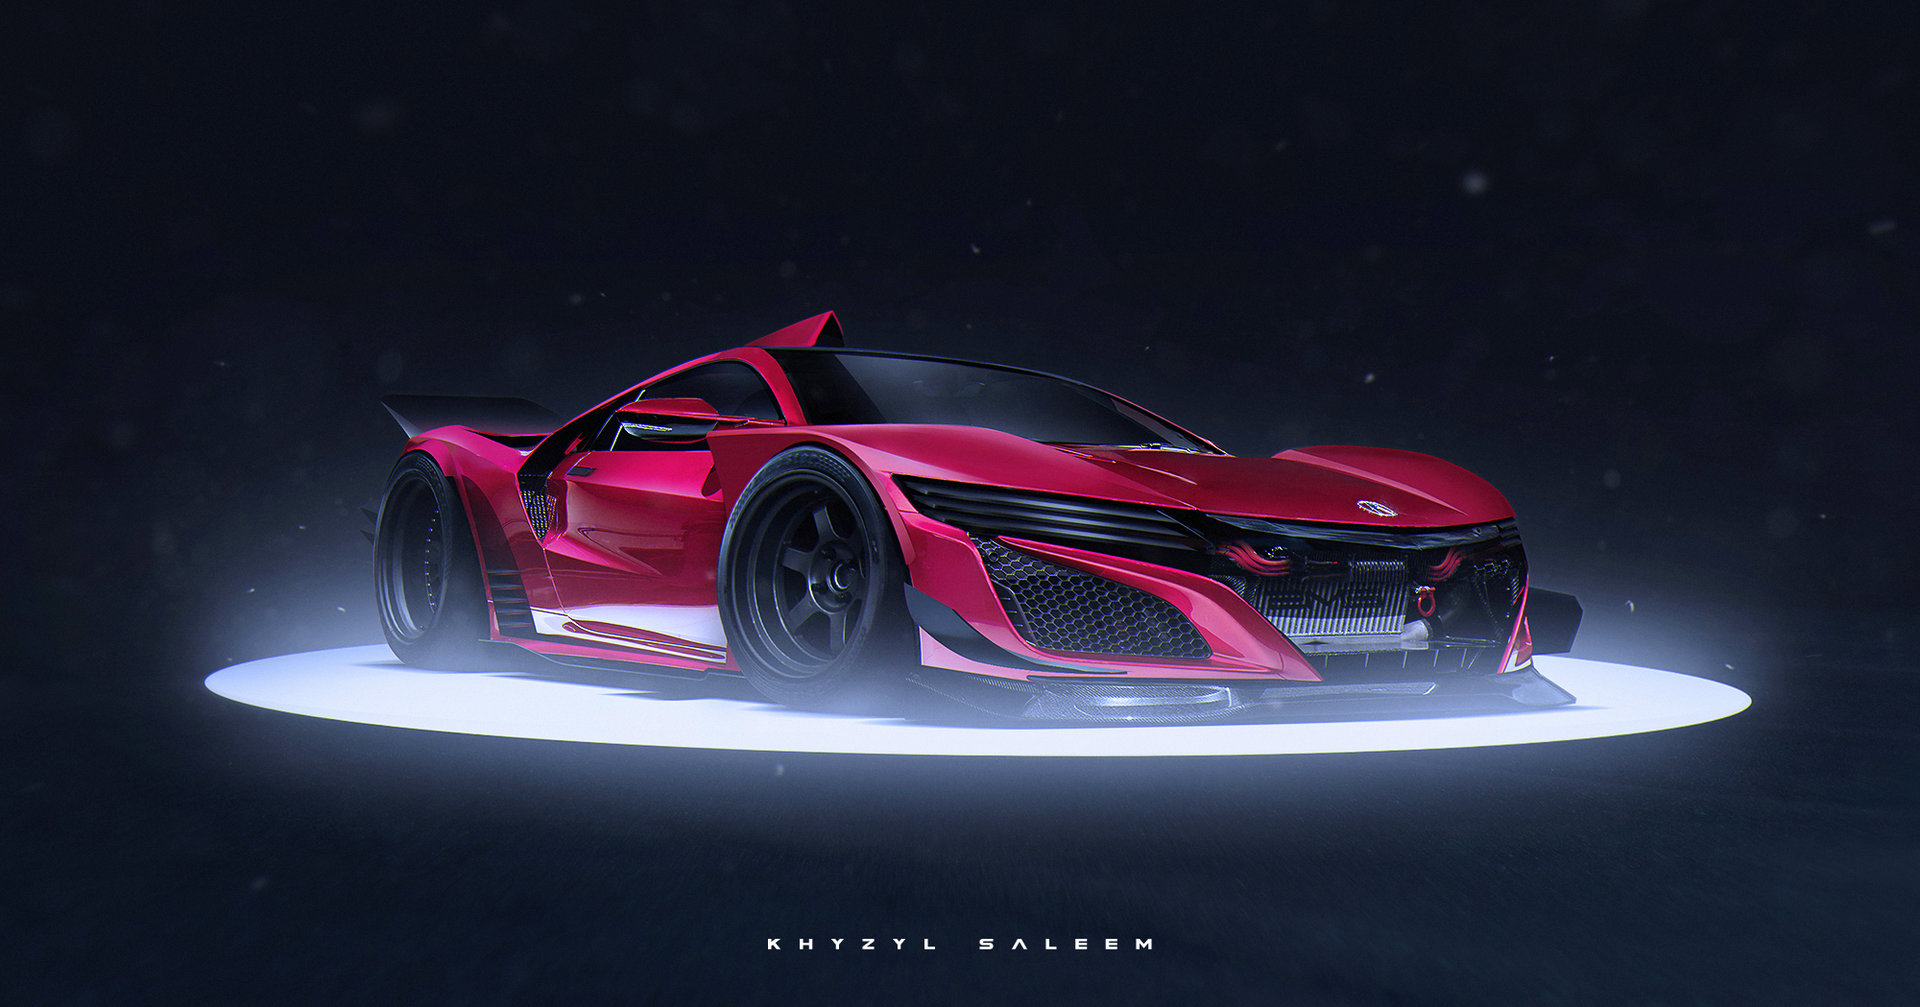 2016 acura nsx rendered as le mans racecar turned street-legal type